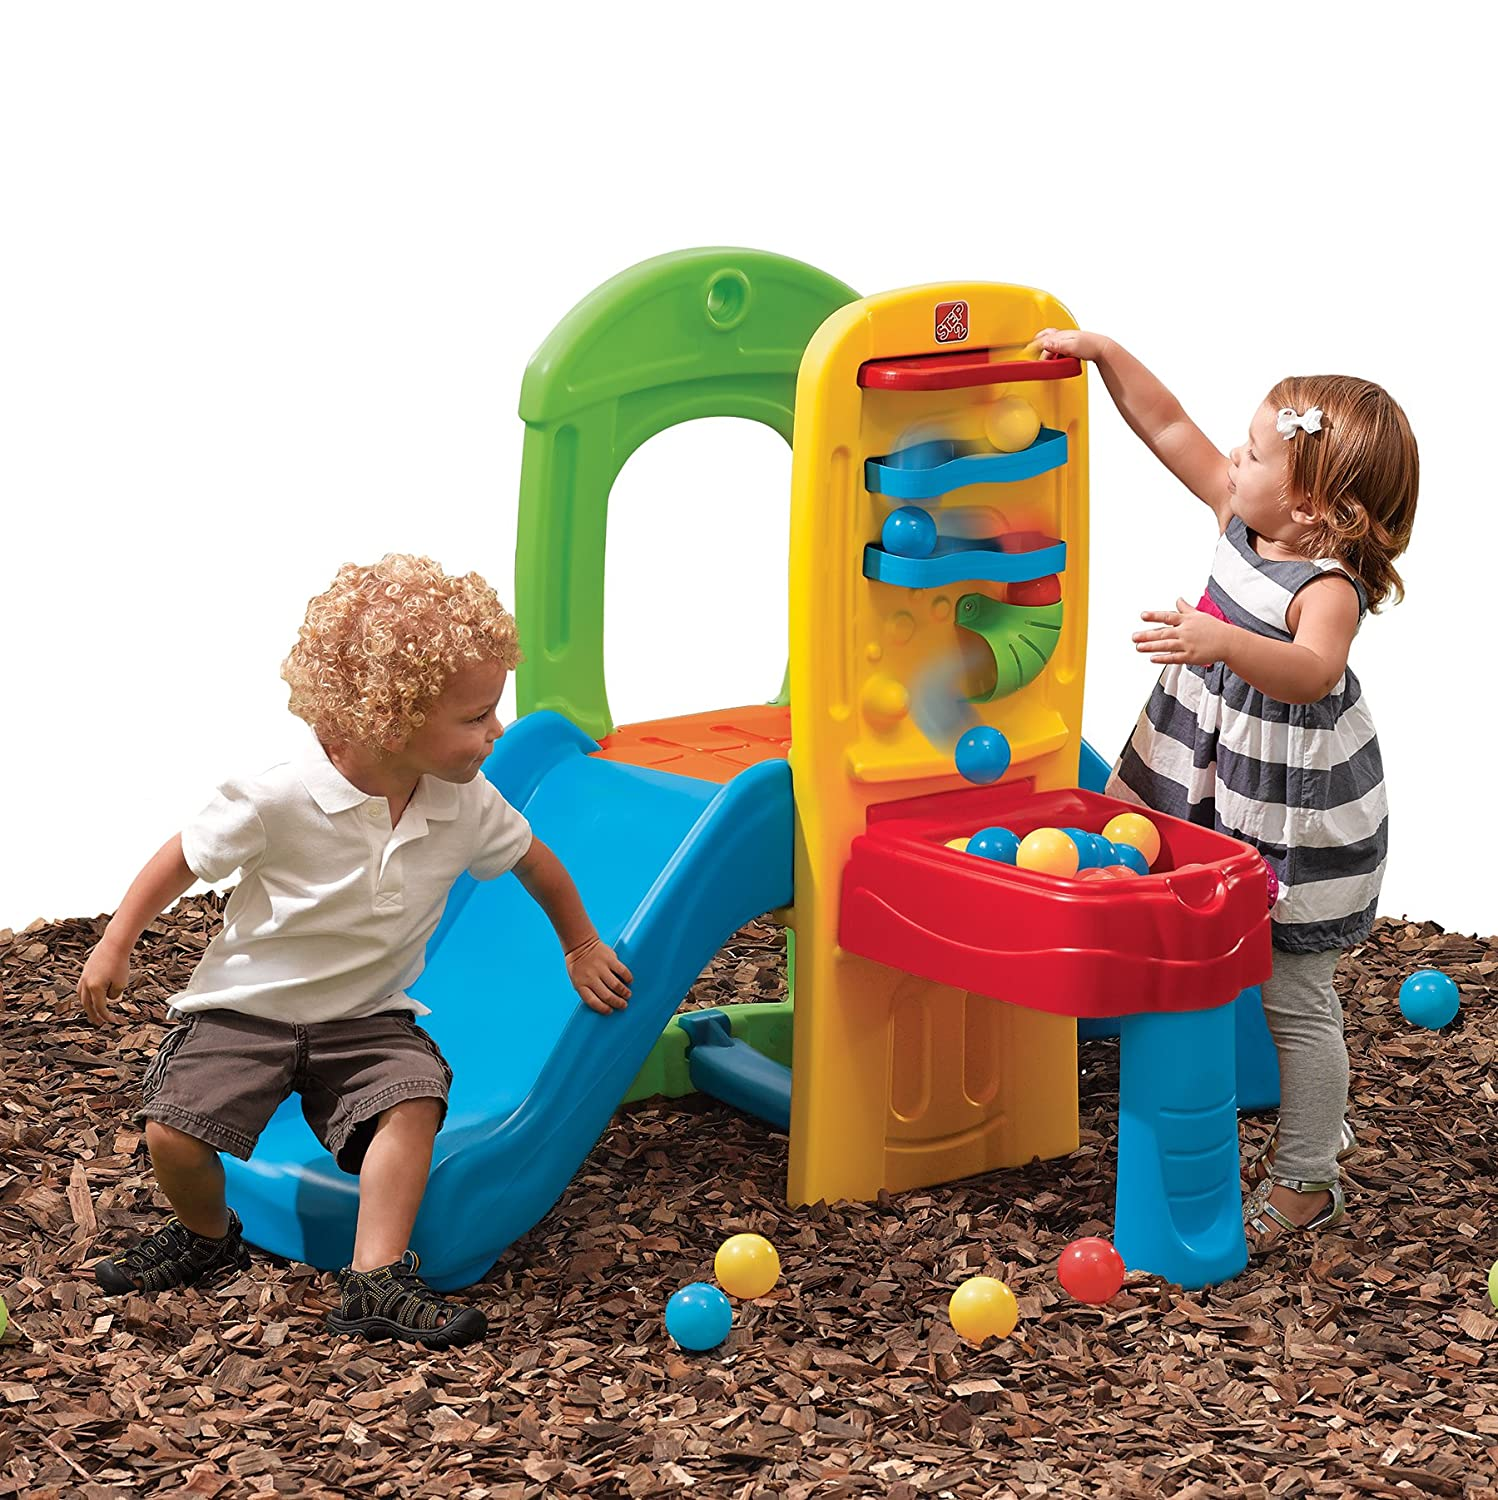 Playground Toys For Toddlers : Small outdoor toddler slide plastic balls climber backyard